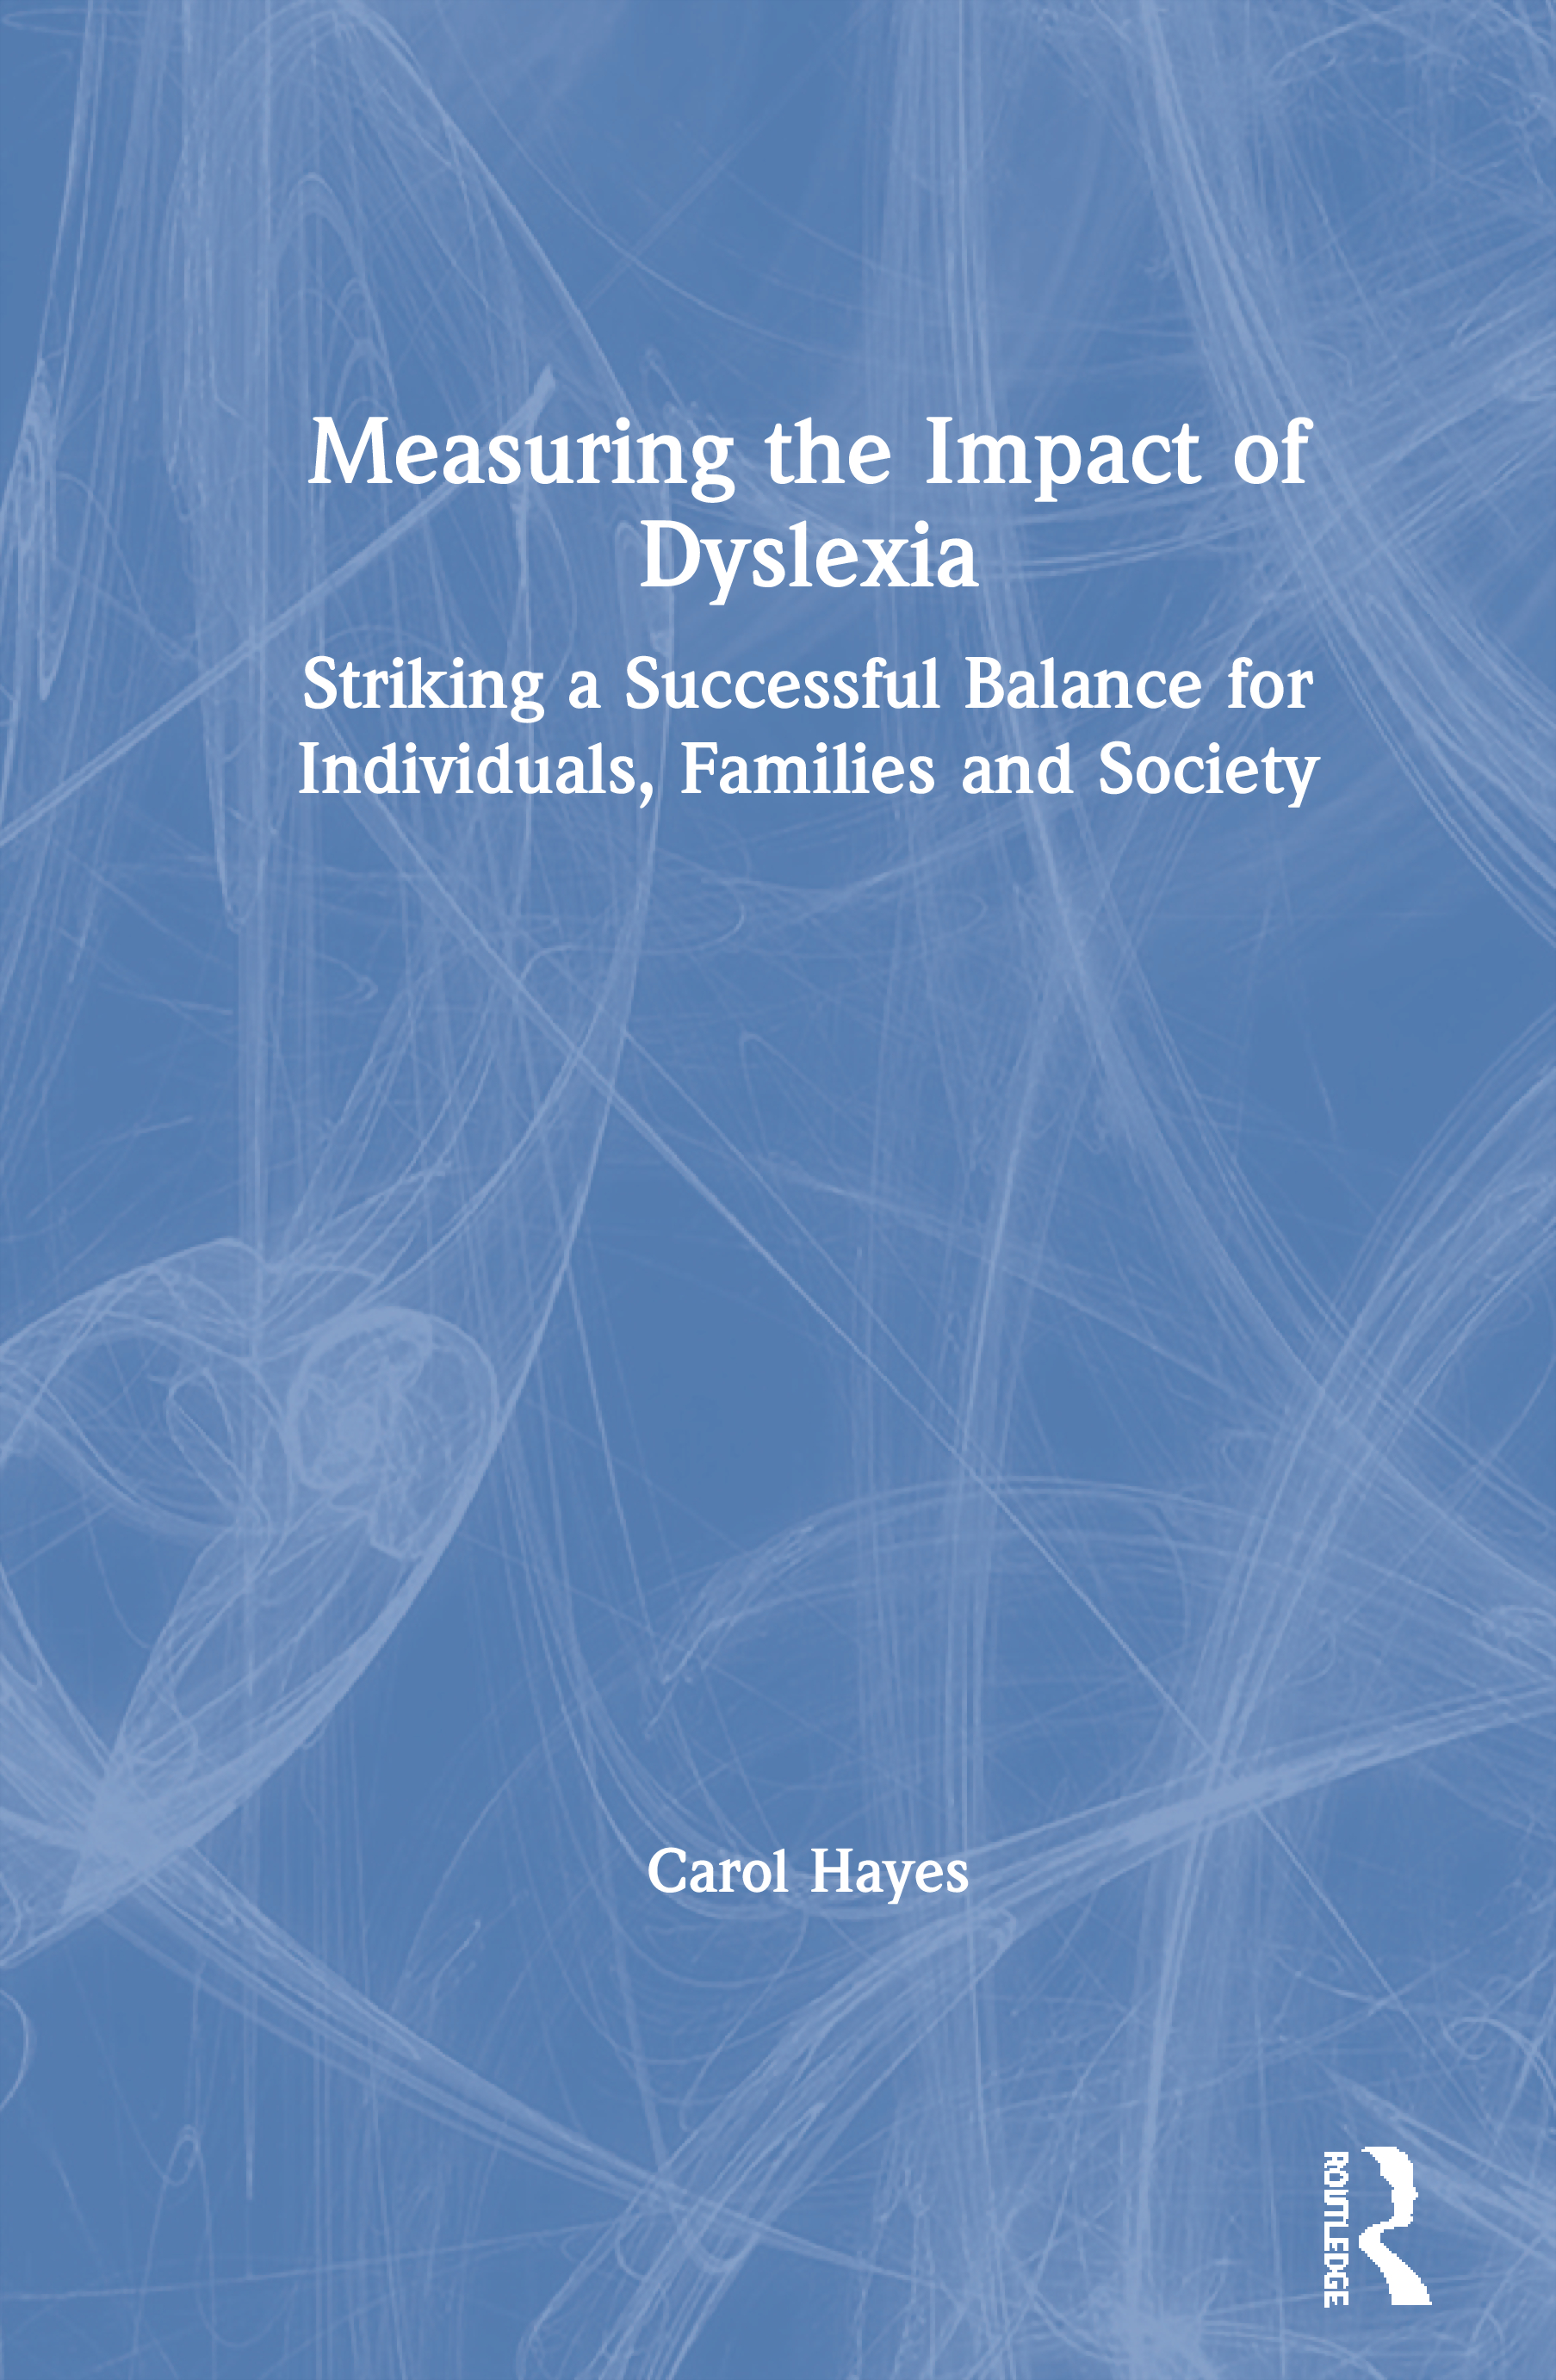 Measuring the Impact of Dyslexia: Striking a Successful Balance for Individuals, Families and Society book cover